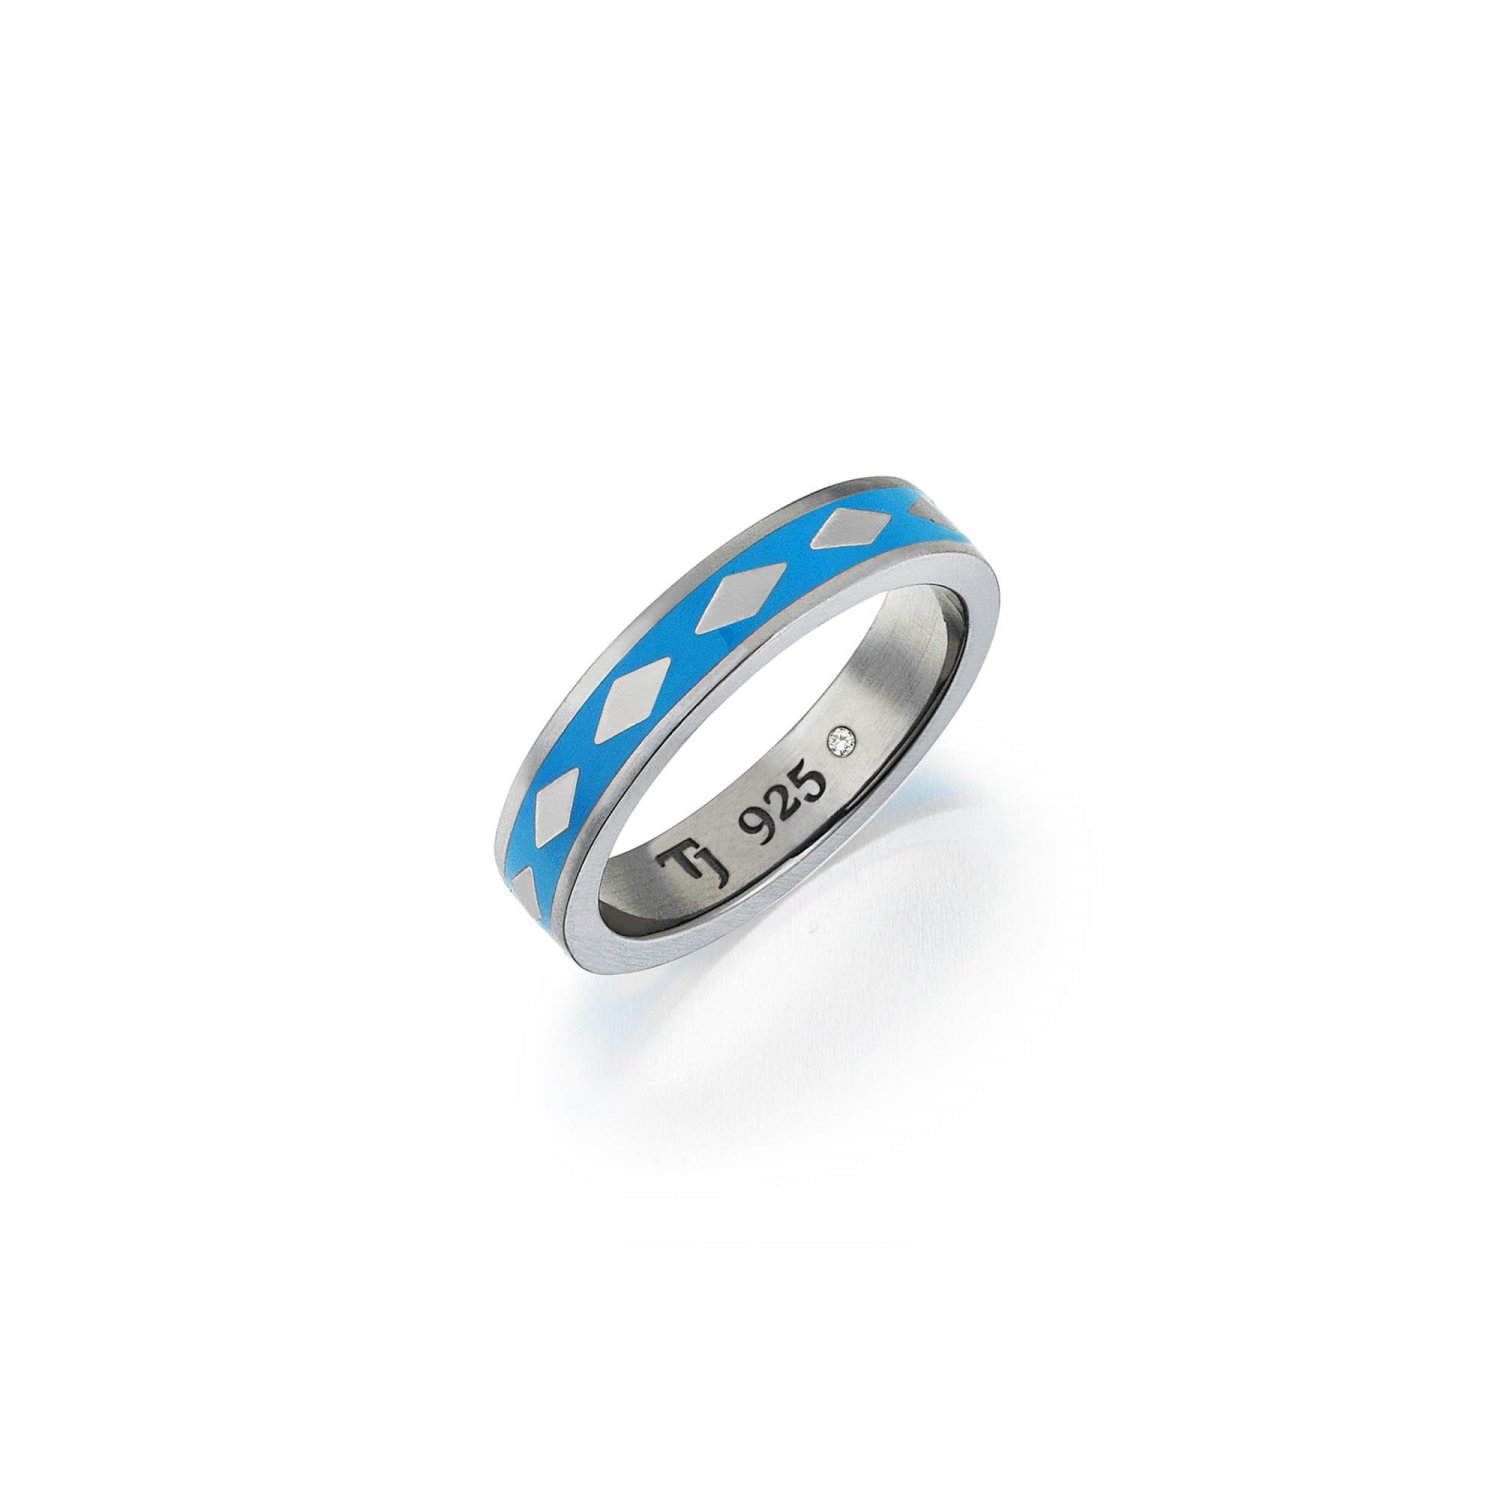 Cubic Snake Band in Silver - 5,30mm - BLUE